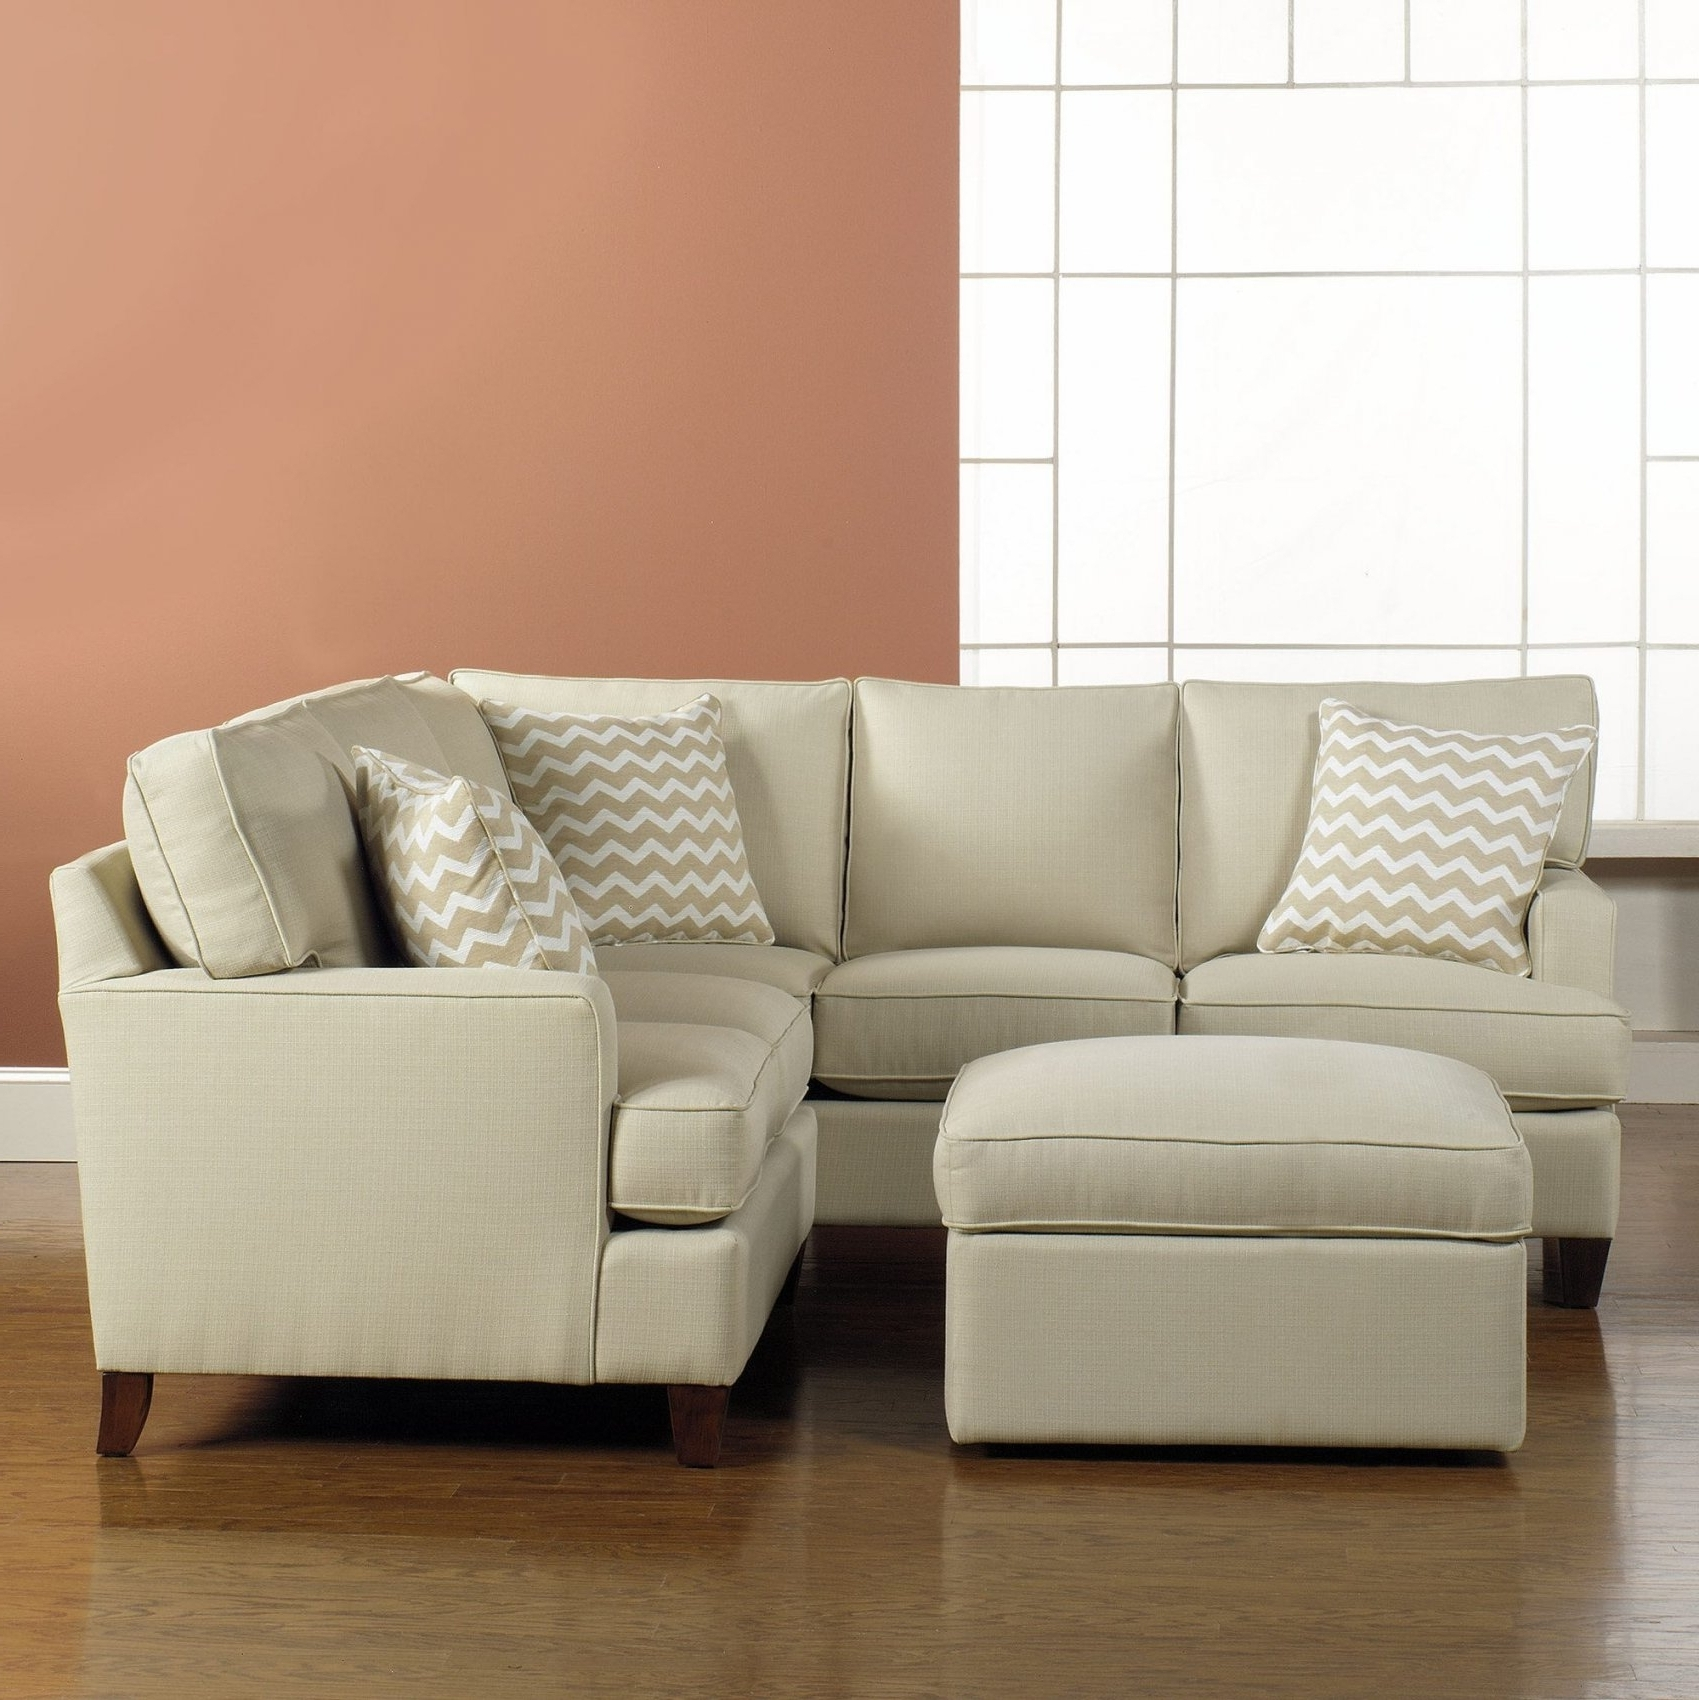 Sectional Sofas For Small Areas Pertaining To 2019 Sectional Sofa For Small Spaces 94 In Living Room Sofa With (Gallery 3 of 20)